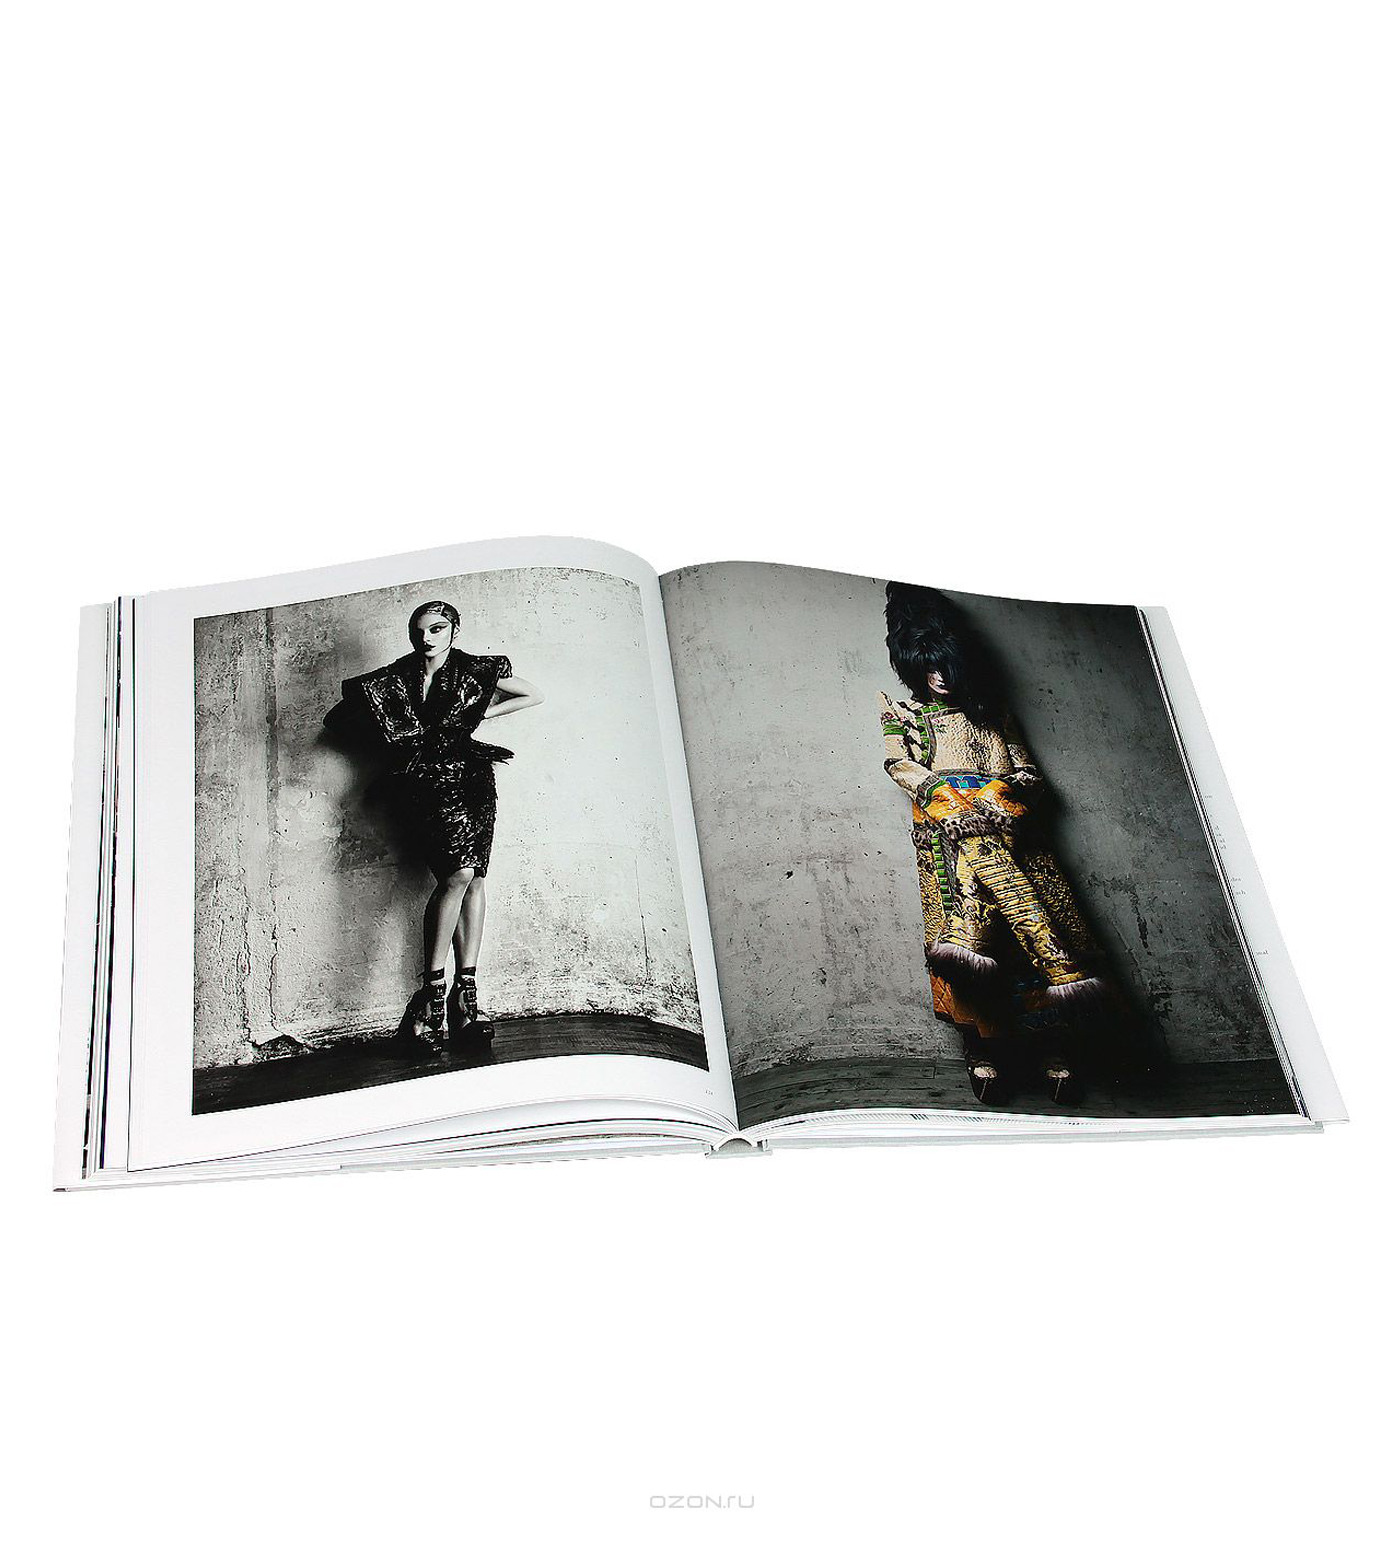 ArtBook(アートブック)のDior Couture.-BLACK(インテリア/OTHER-GOODS/interior/OTHER-GOODS)-8478-3802-8-13 拡大詳細画像2